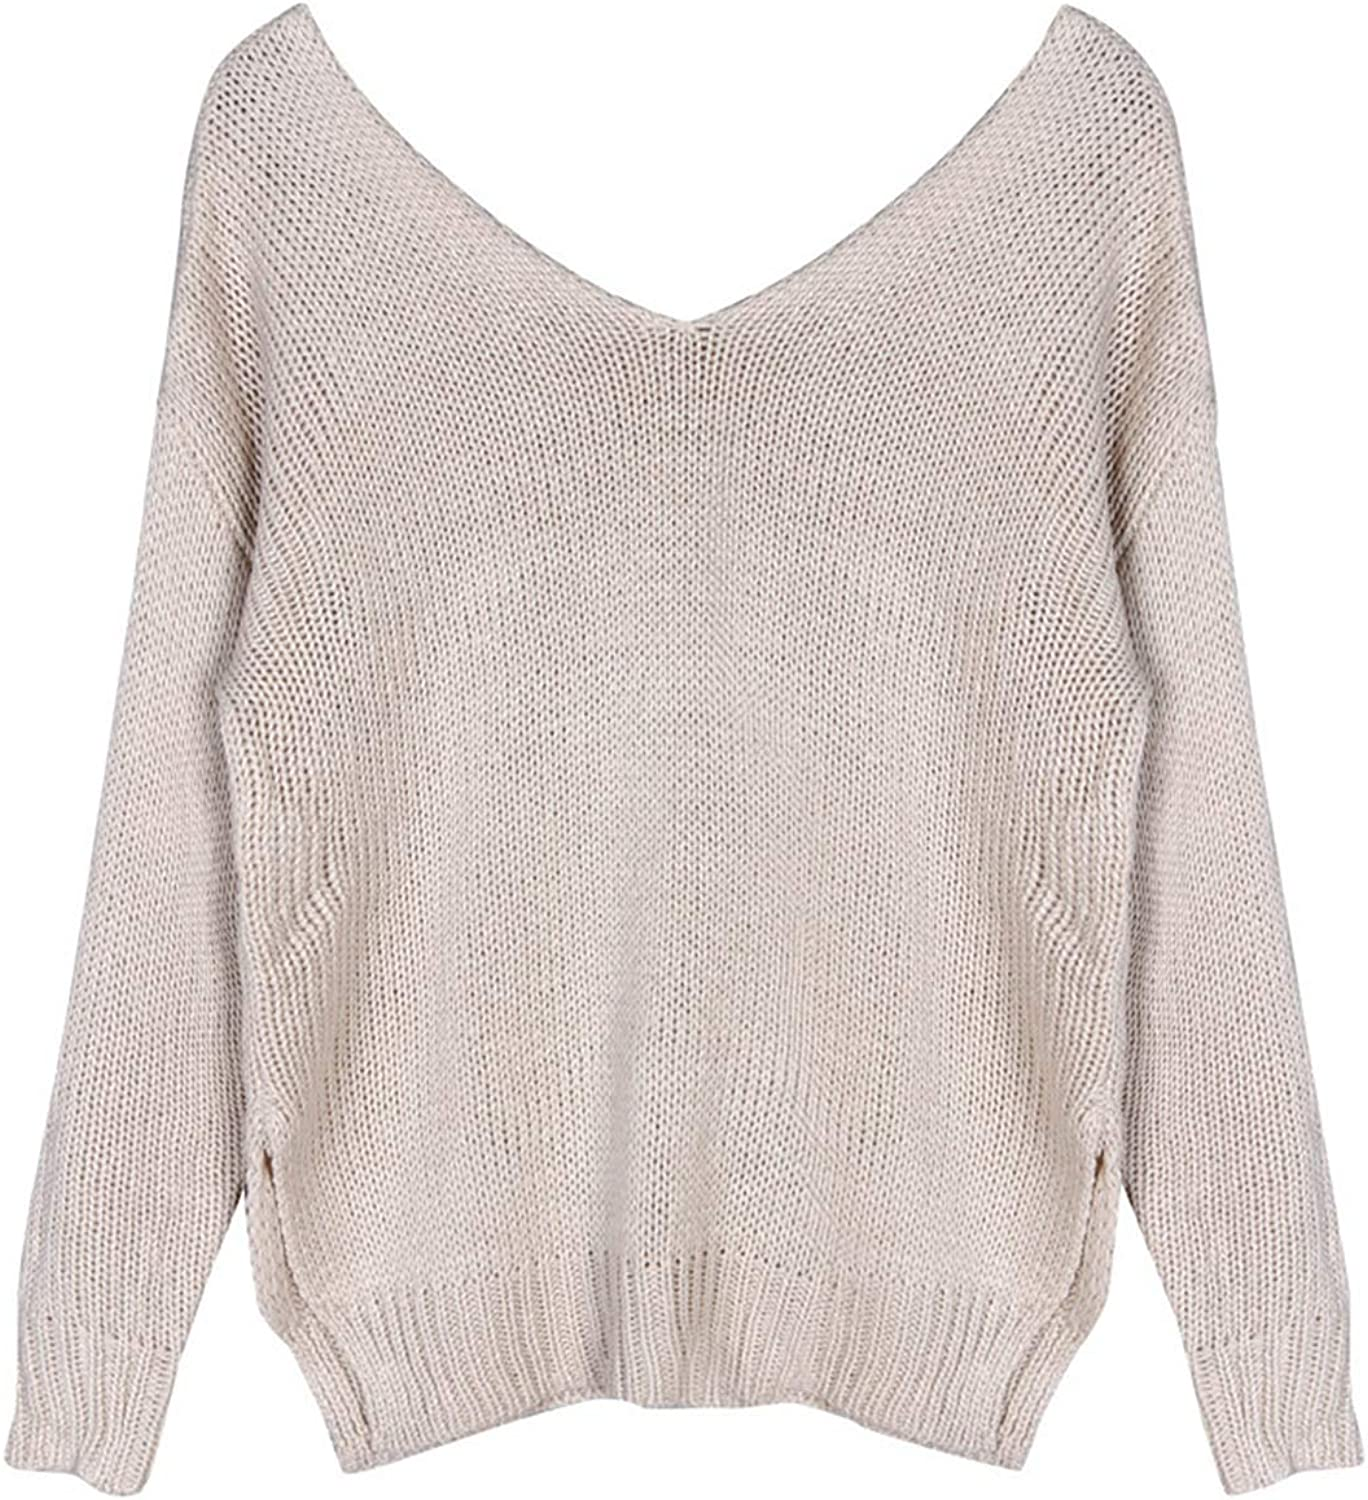 Vedolay Womens Sweaters Clearance, Womens Off Shoulder Knitted Split Sexy V-Neck Jumper Casual Sweaters Tops